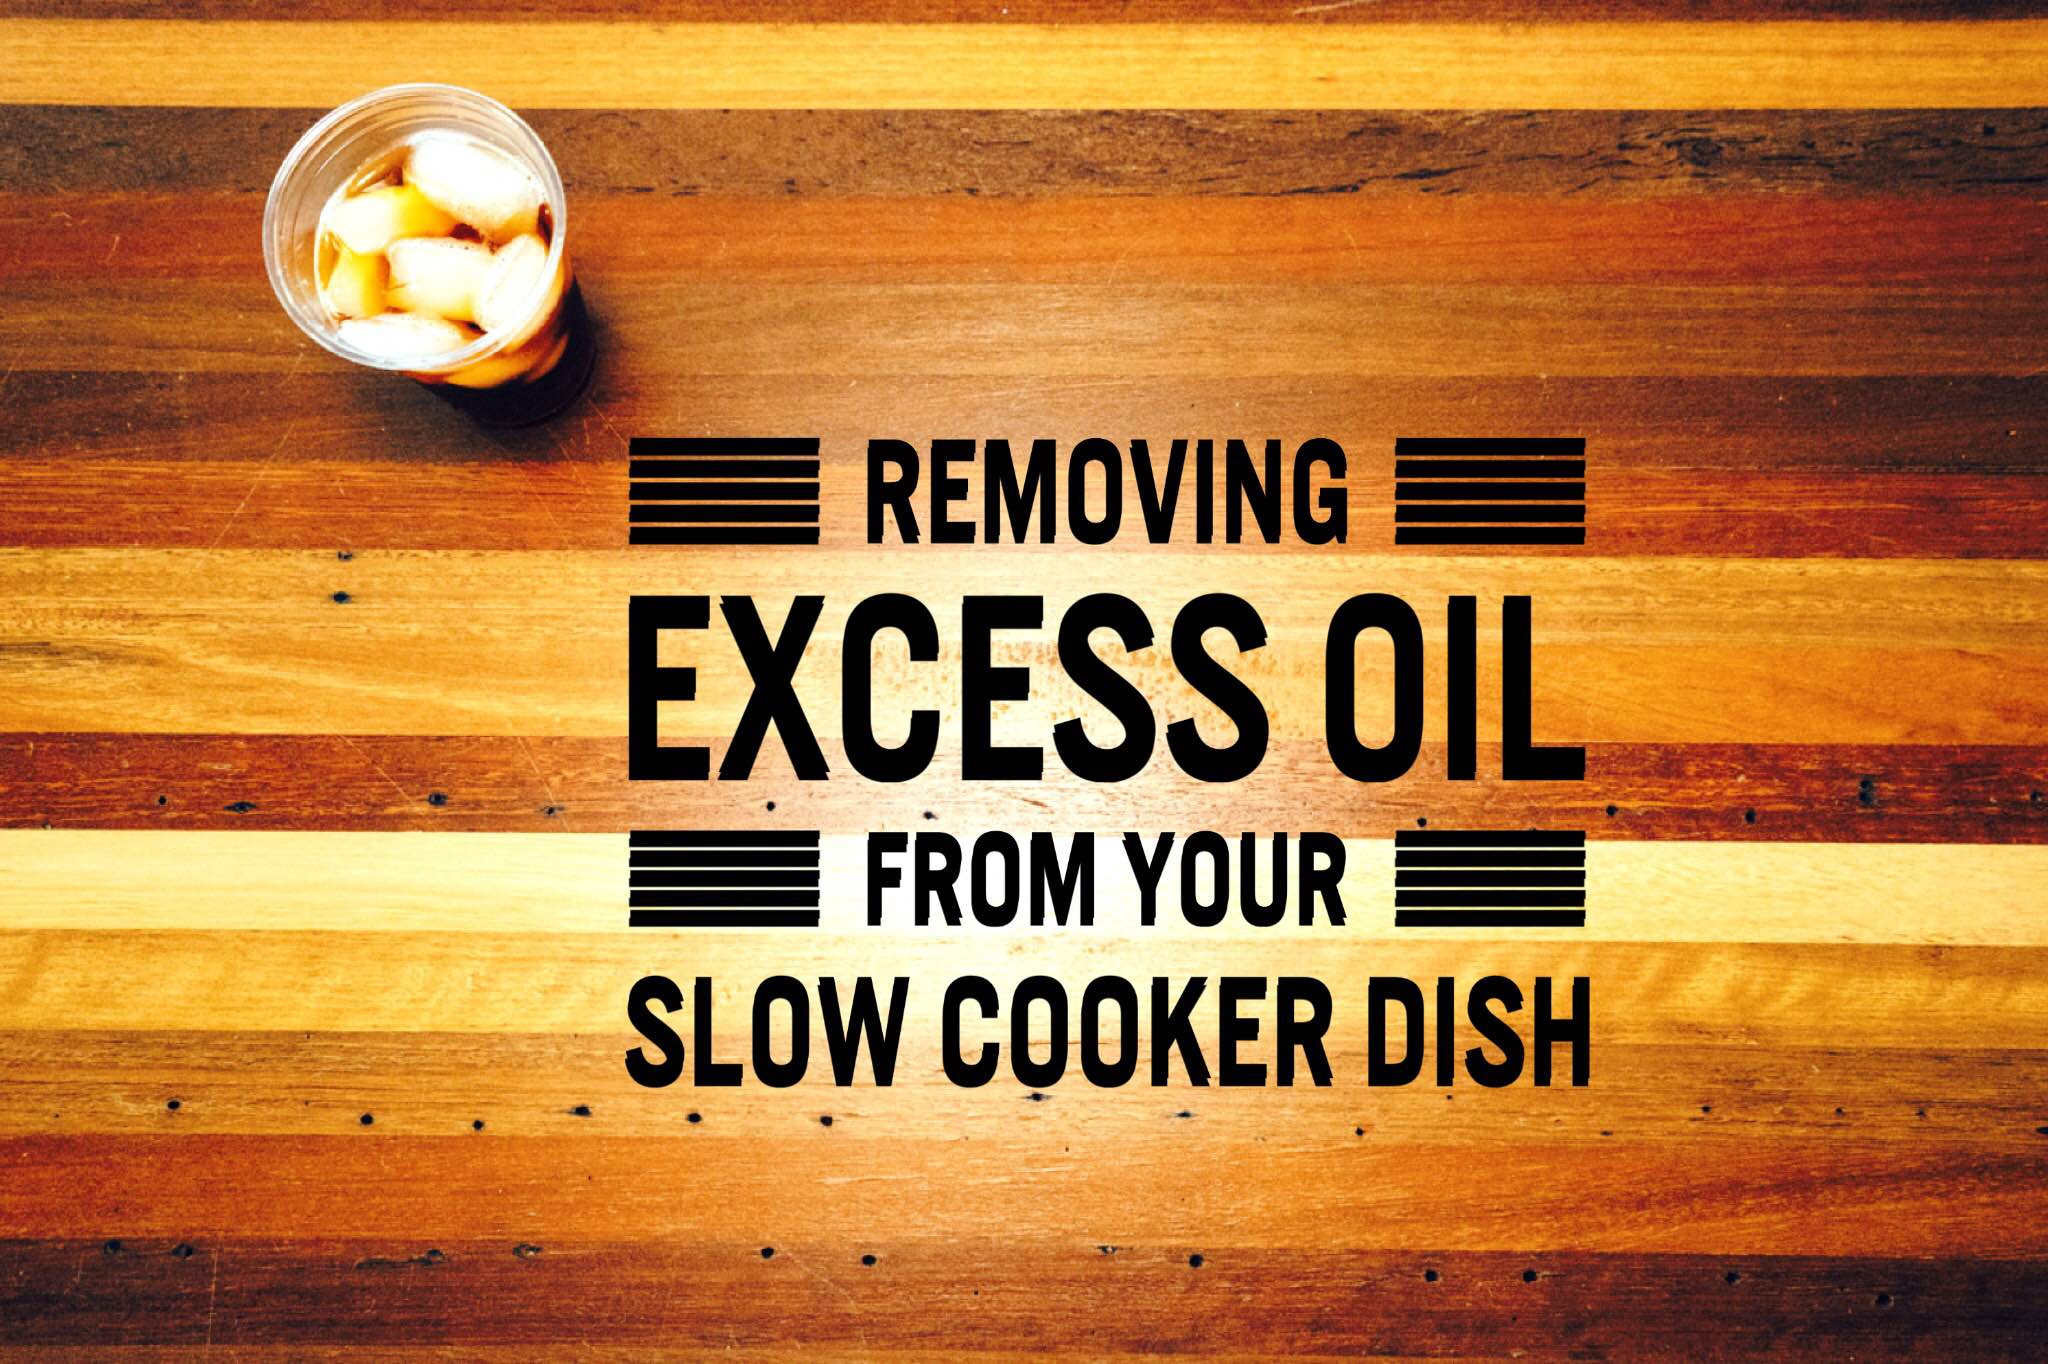 leftover hardwood flooring ideas of how can i remove excess fat oil from my slow cooker dish in how can i remove excess fat oil from my slow cooker dish